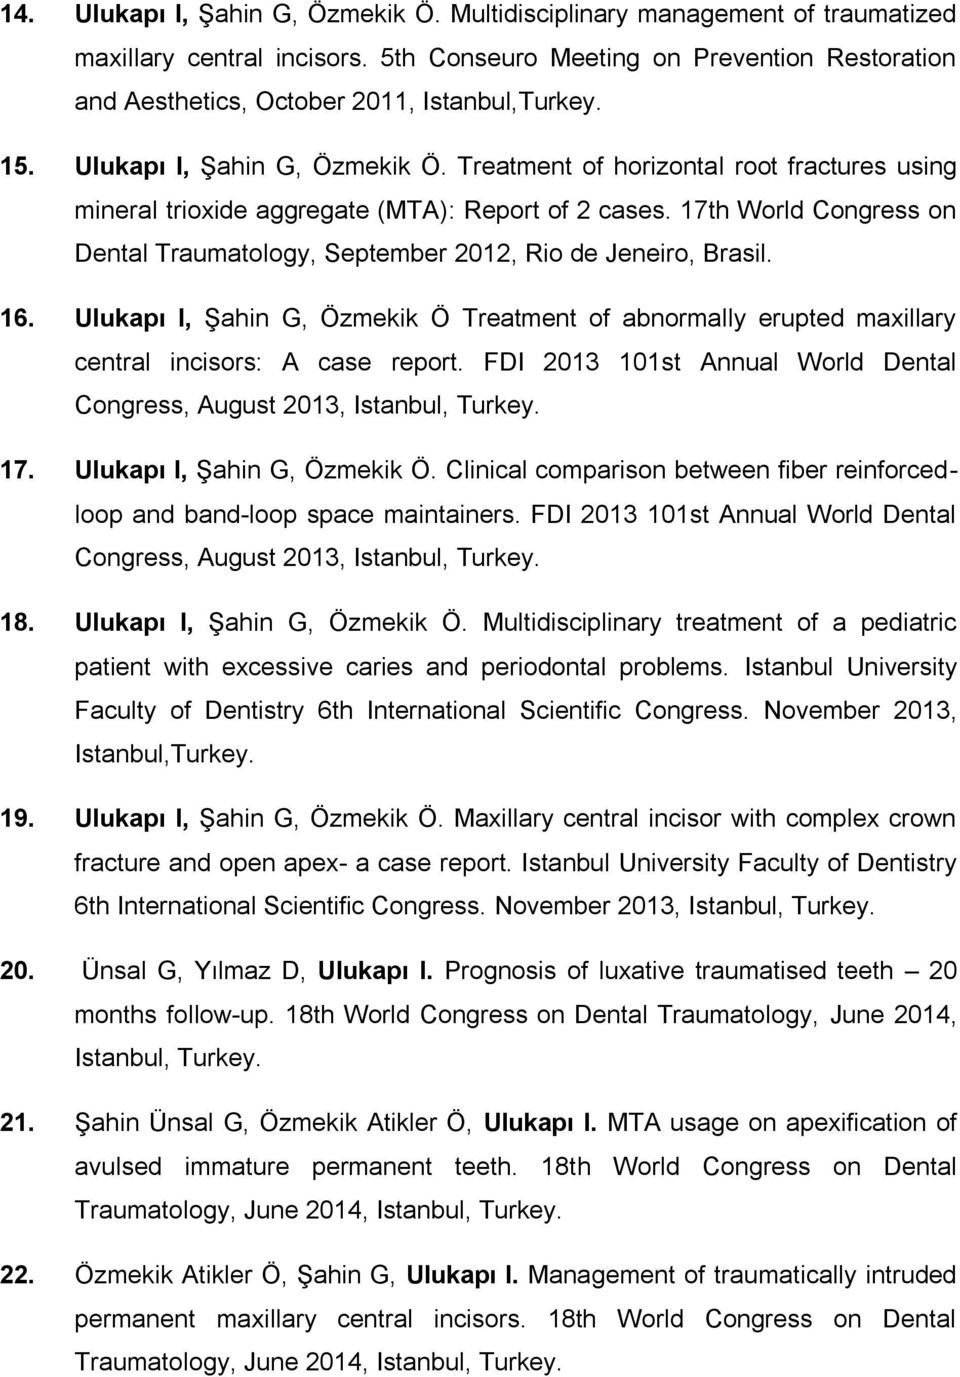 17th World Congress on Dental Traumatology, September 2012, Rio de Jeneiro, Brasil. 16. Ulukapı I, Şahin G, Özmekik Ö Treatment of abnormally erupted maxillary central incisors: A case report.